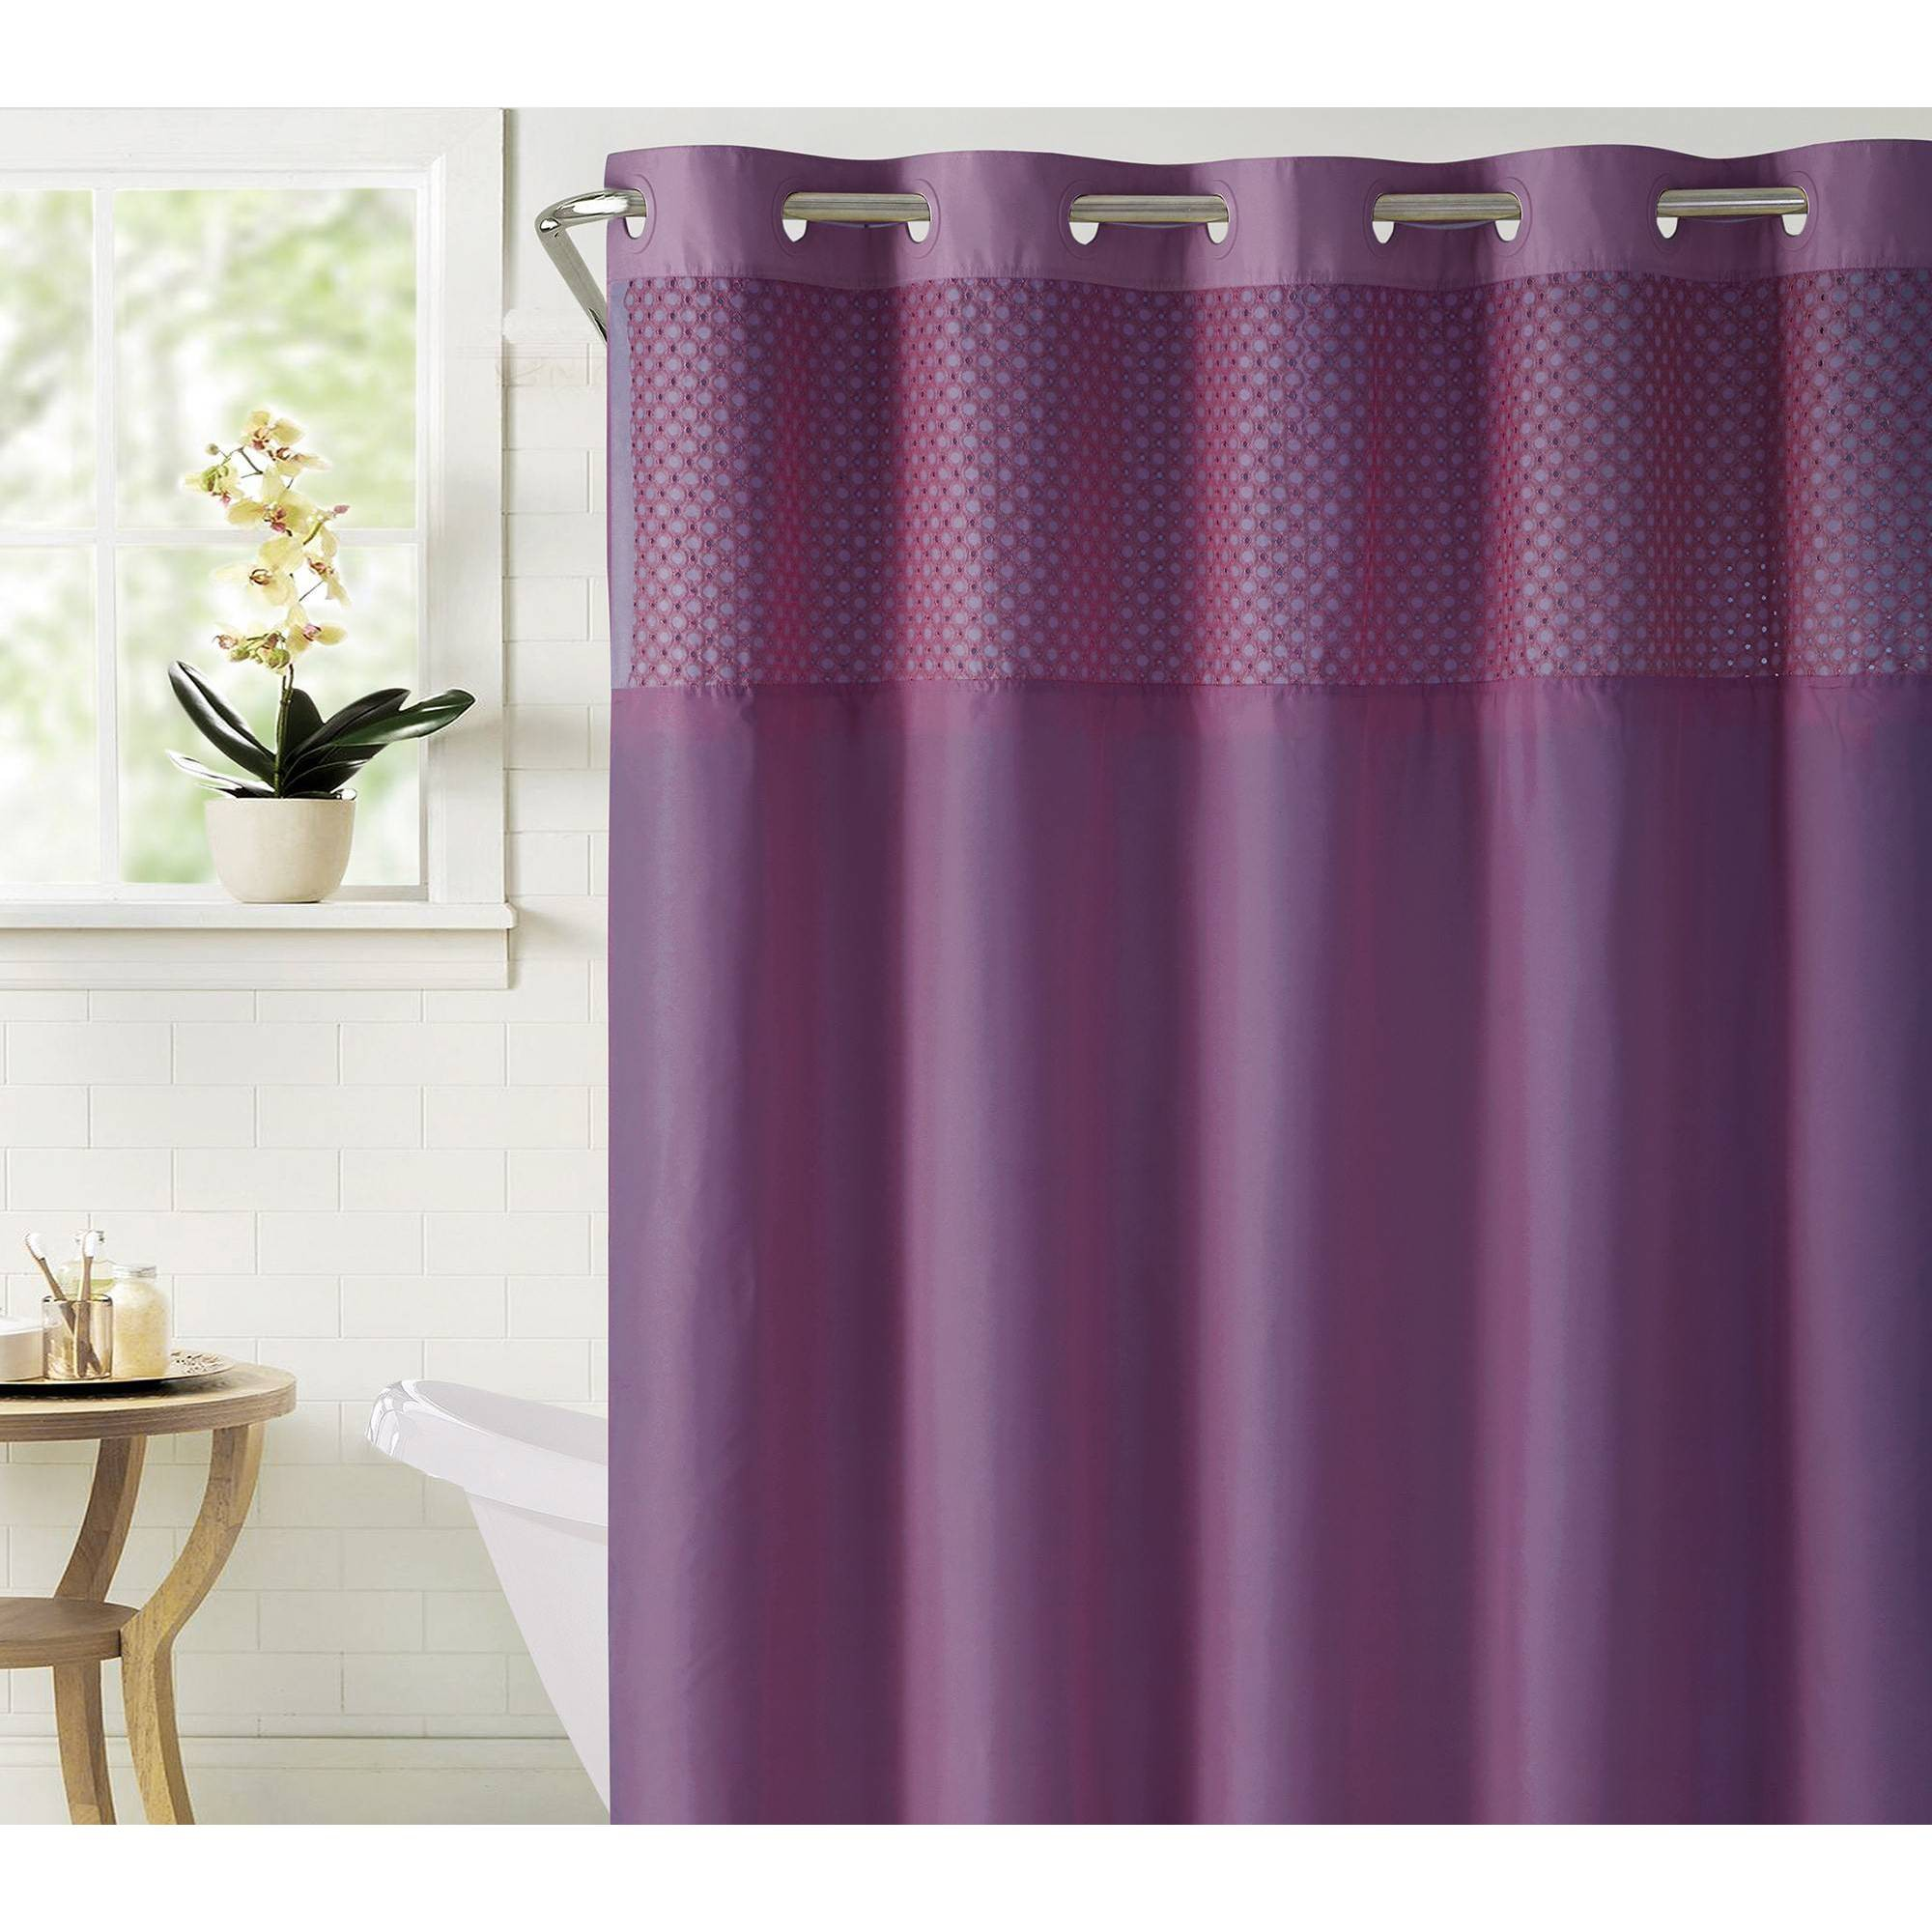 Bahamas Shower Curtain With Liner Eggplant Purple Hookless Curtains Hookless Shower Curtain Eggplant Purple